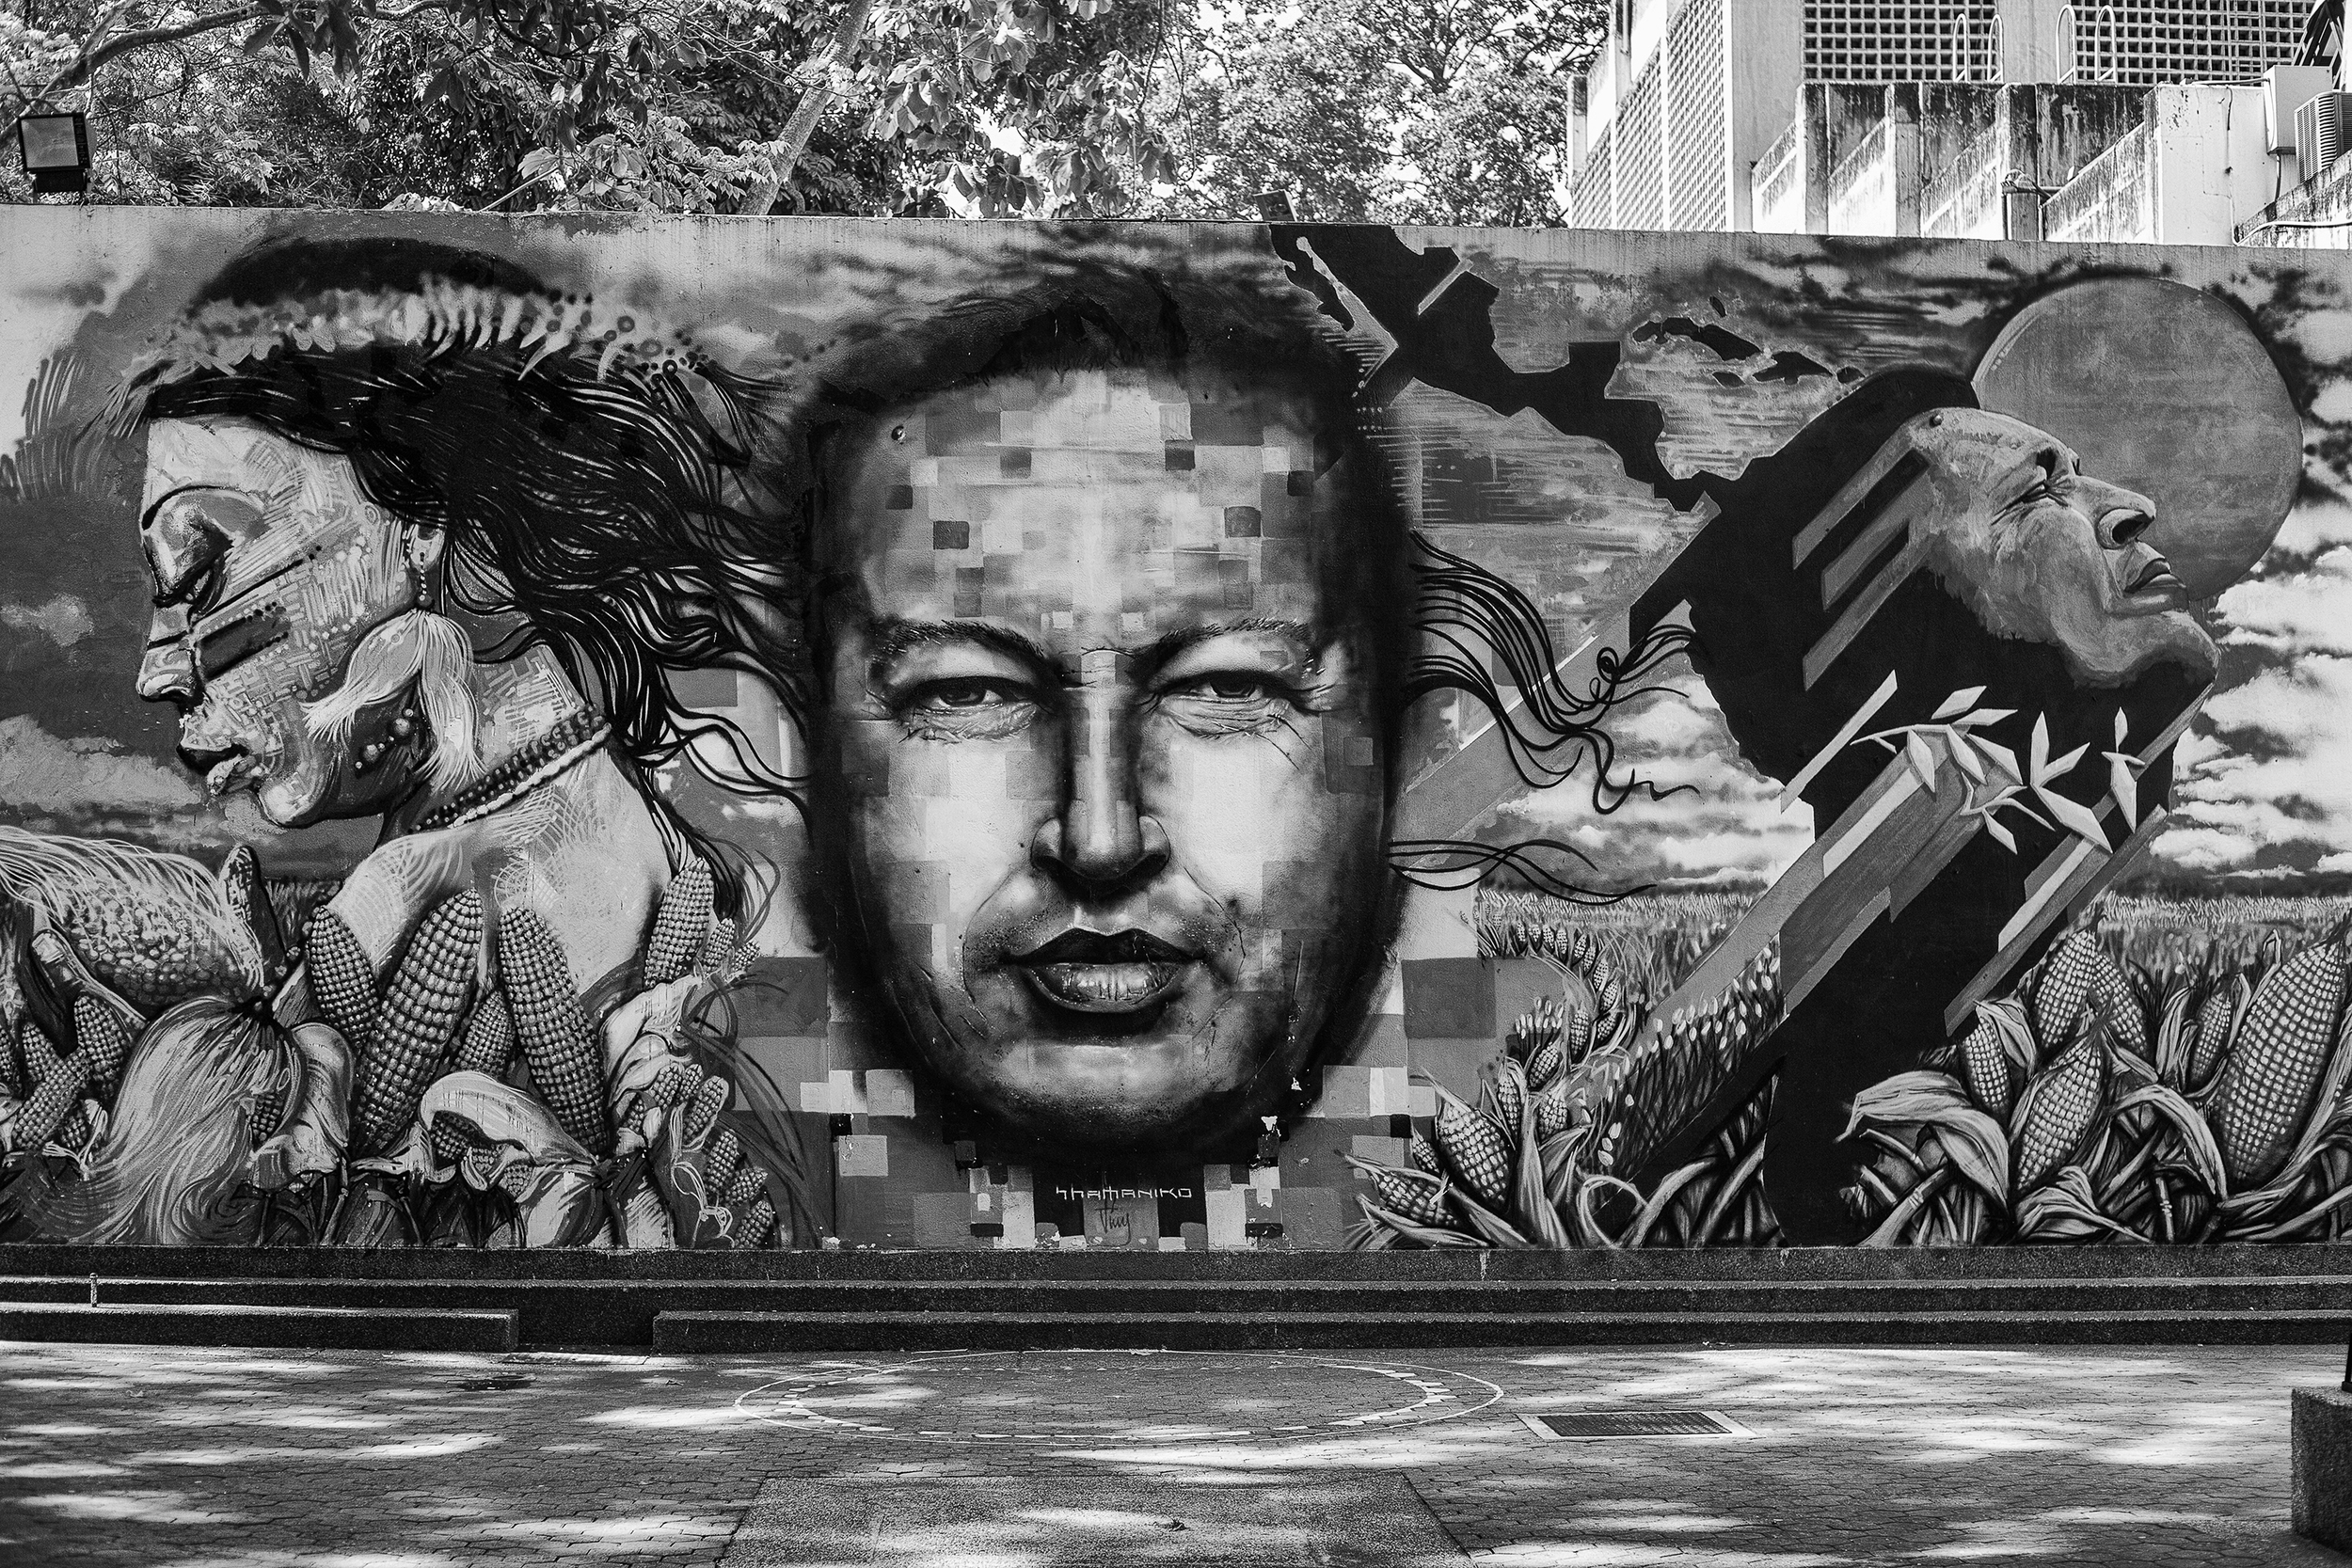 Wall with graffiti of Chavez, in Bellas Artes. Caracas, 03/07/14.